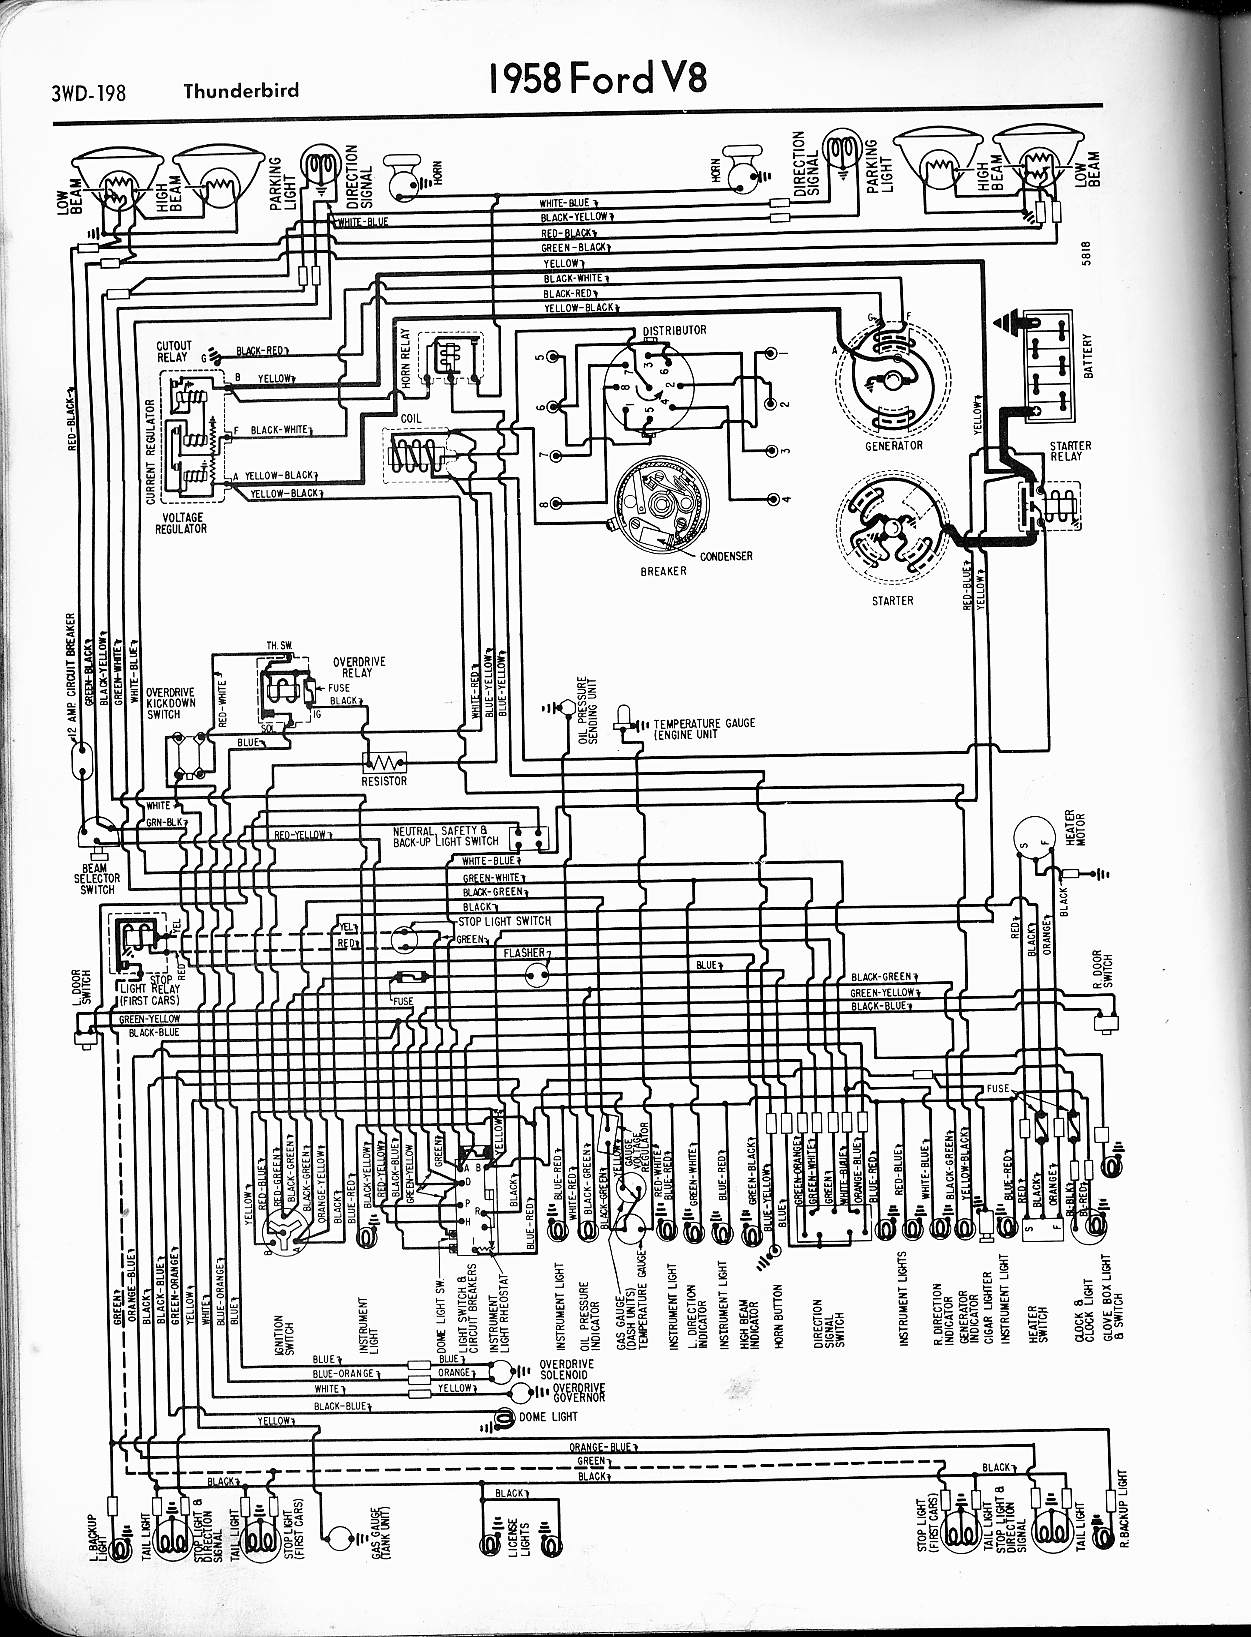 1957 ford wiring harness wiring diagram57 65 ford wiring diagrams1957 ford wiring harness 13